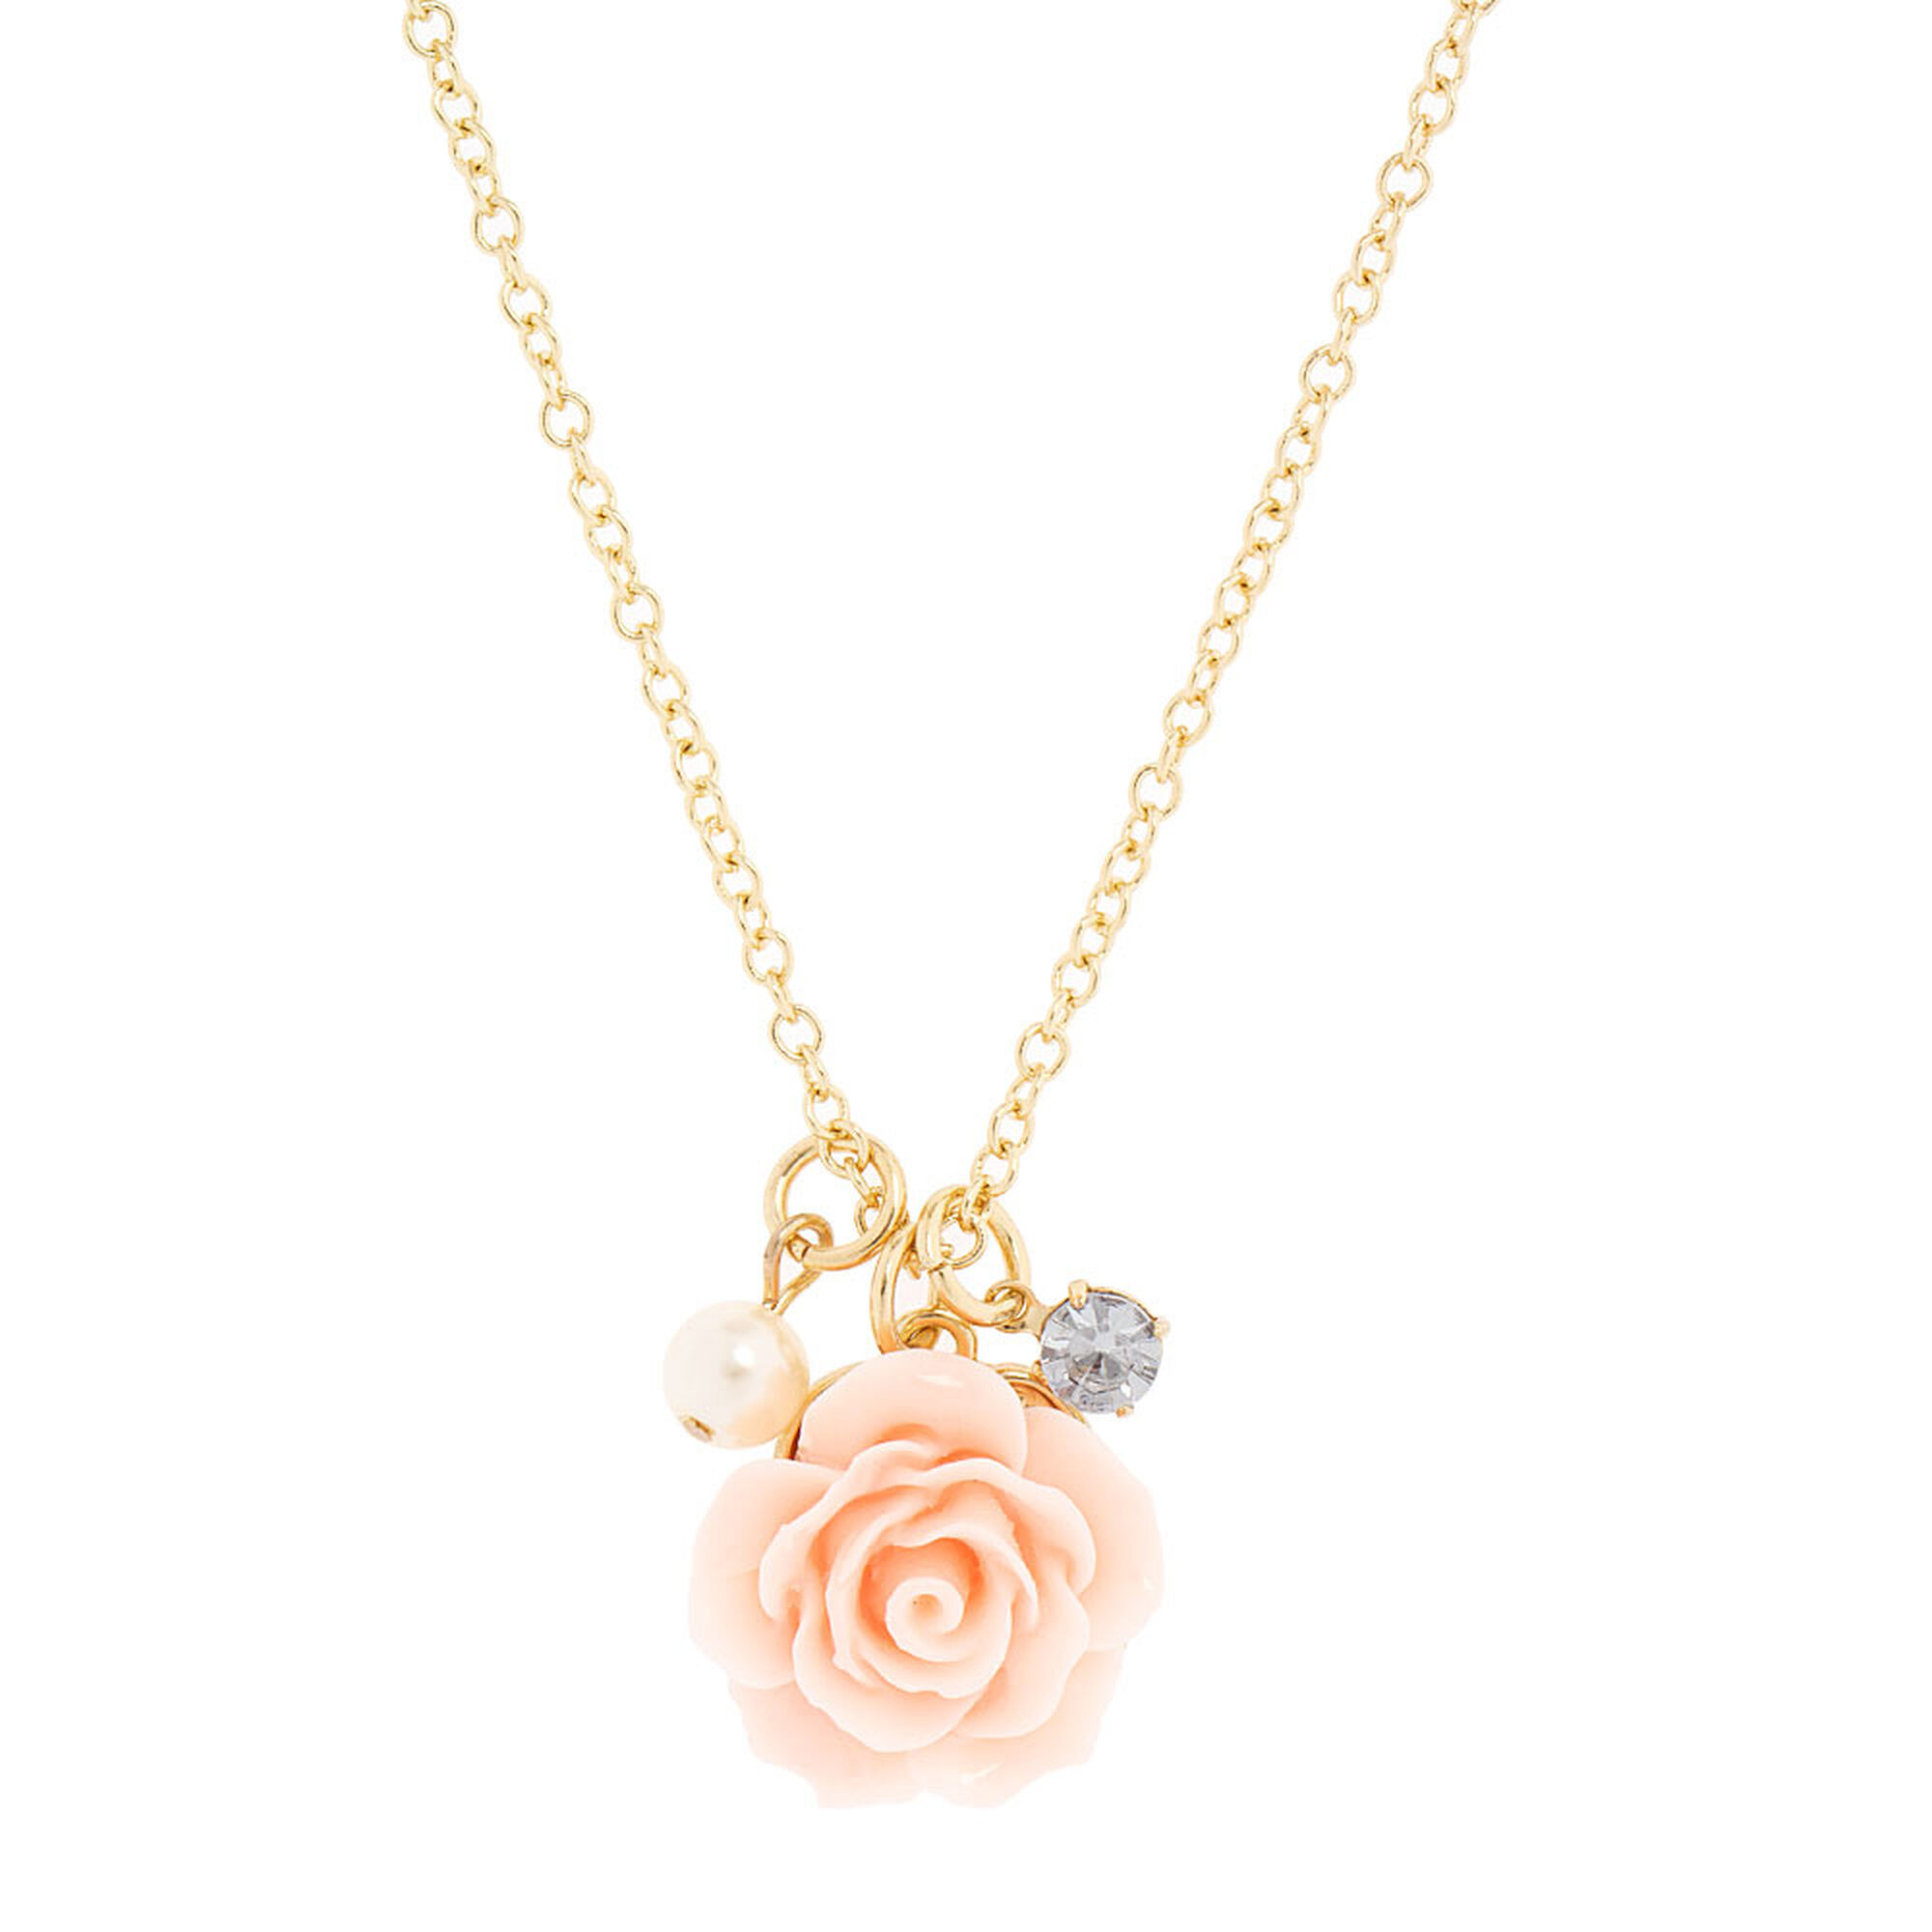 Pink carved rose pendant necklace claires pink carved rose pendant necklace audiocablefo light ideas